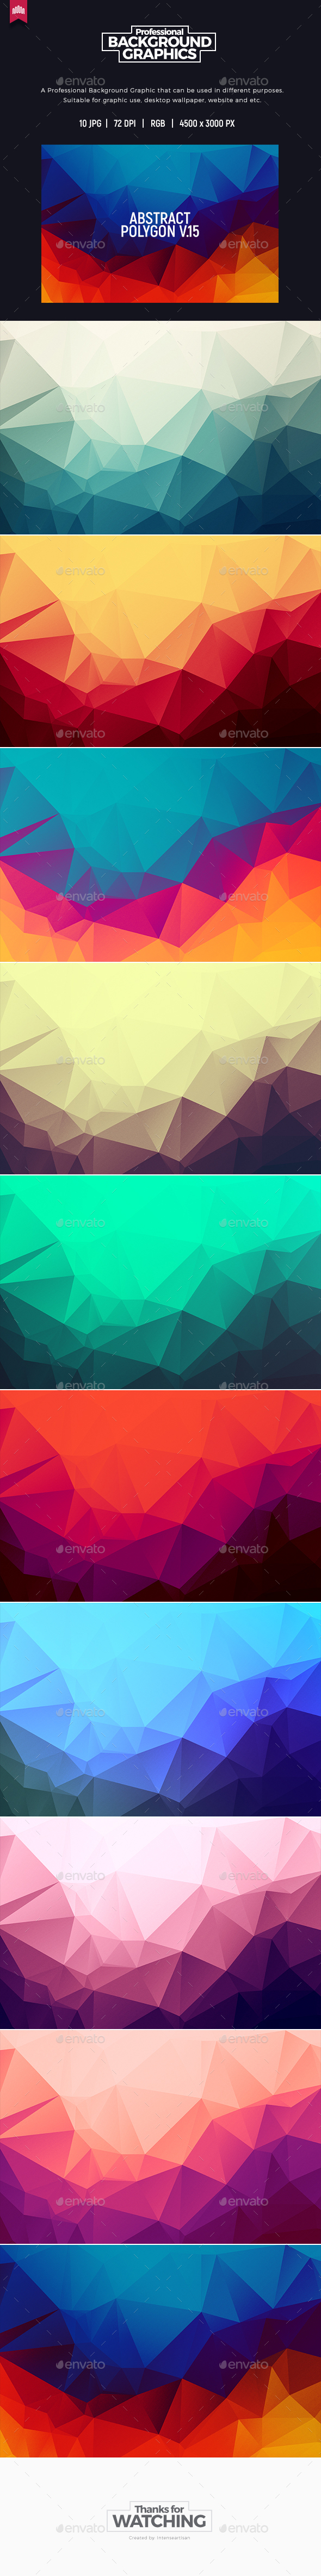 Abstract Polygon V.15 - Background - Abstract Backgrounds